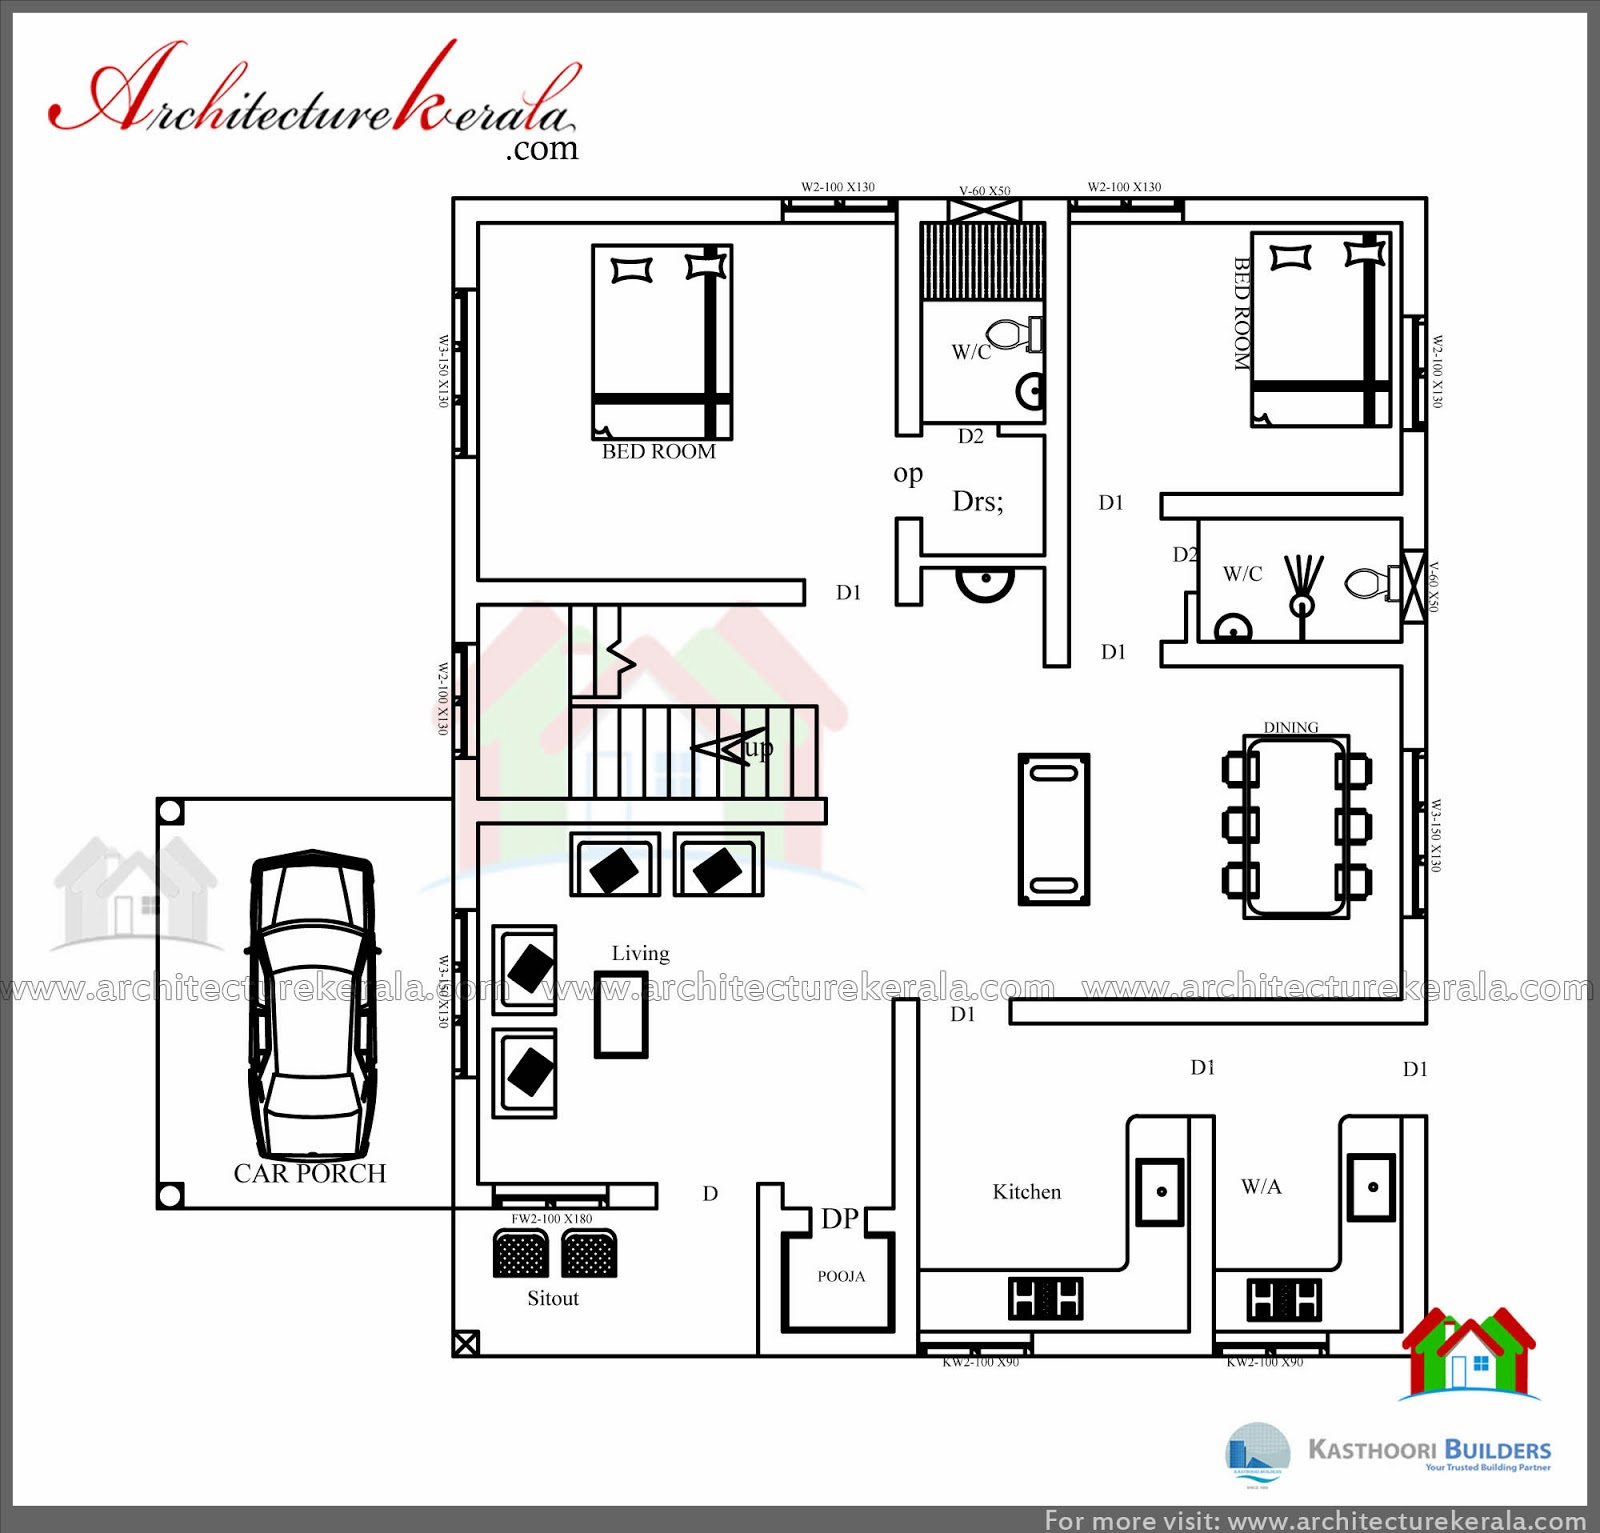 Low cost 3 bedroom kerala house plan with elevation free for Kerala home designs and floor plans